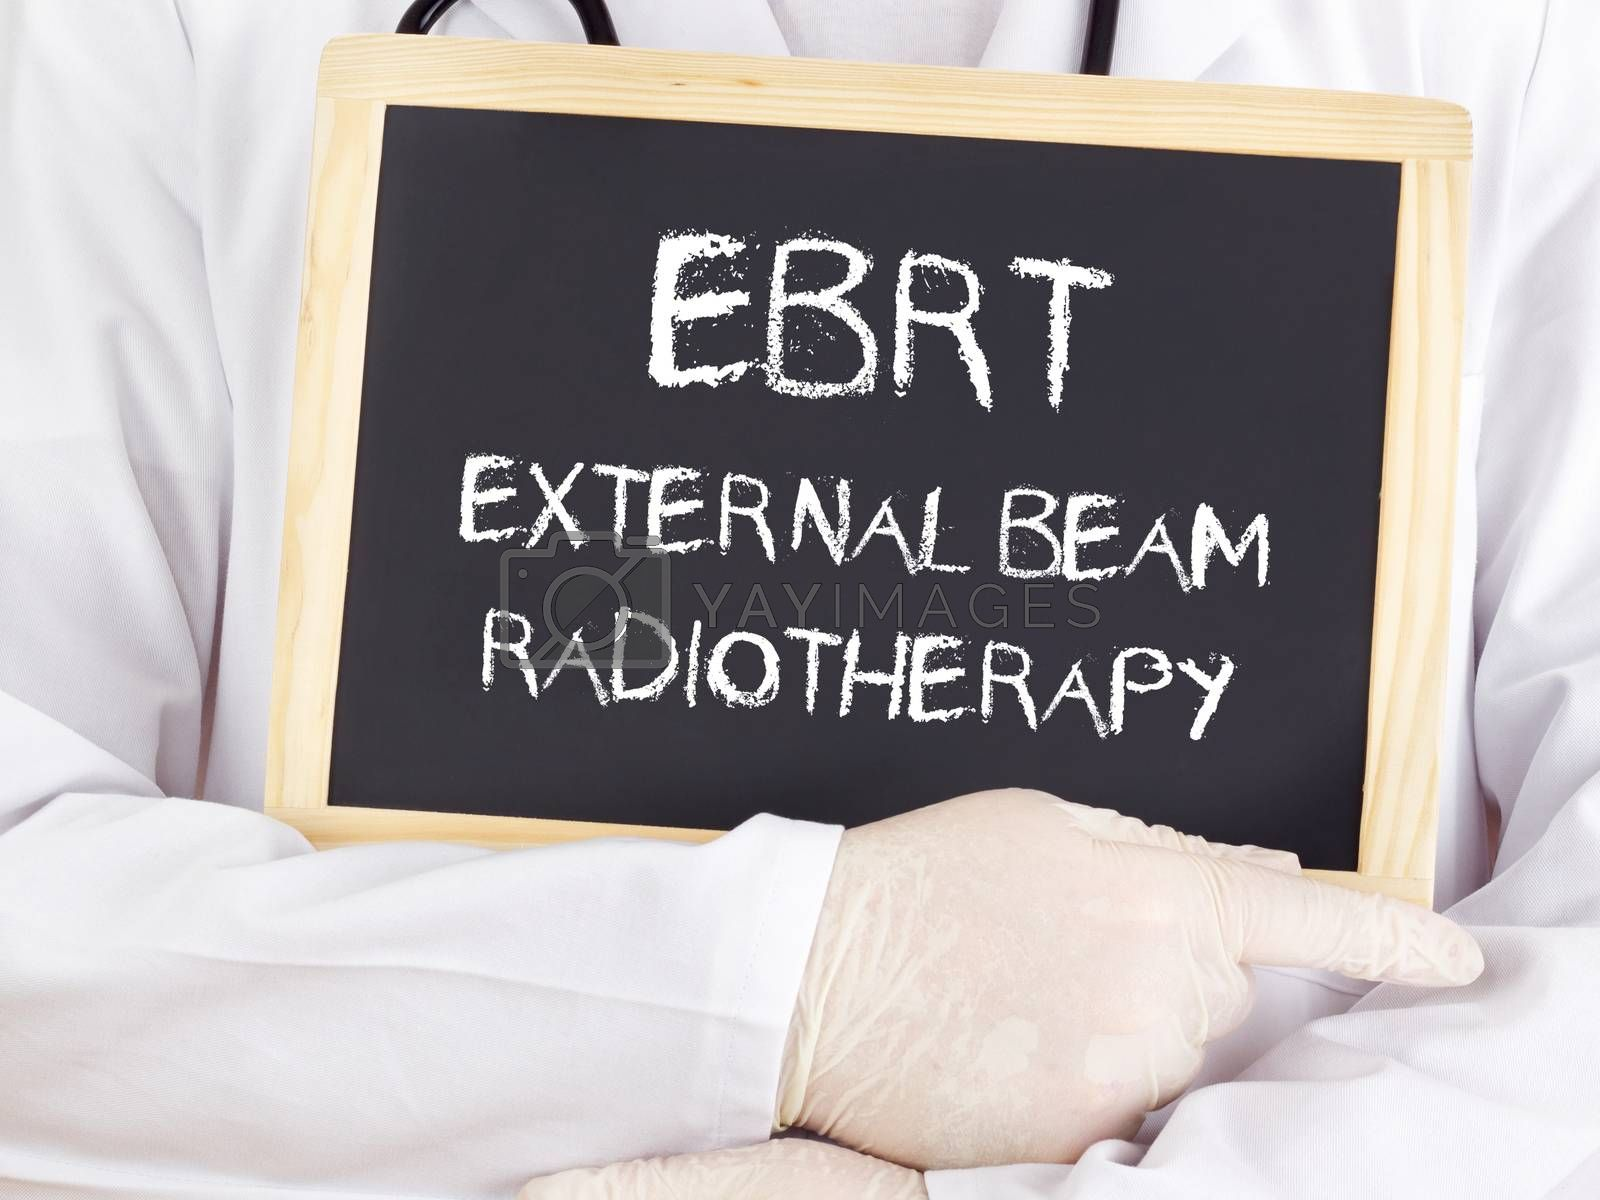 Doctor shows information: EBRT external beam radiotherapy